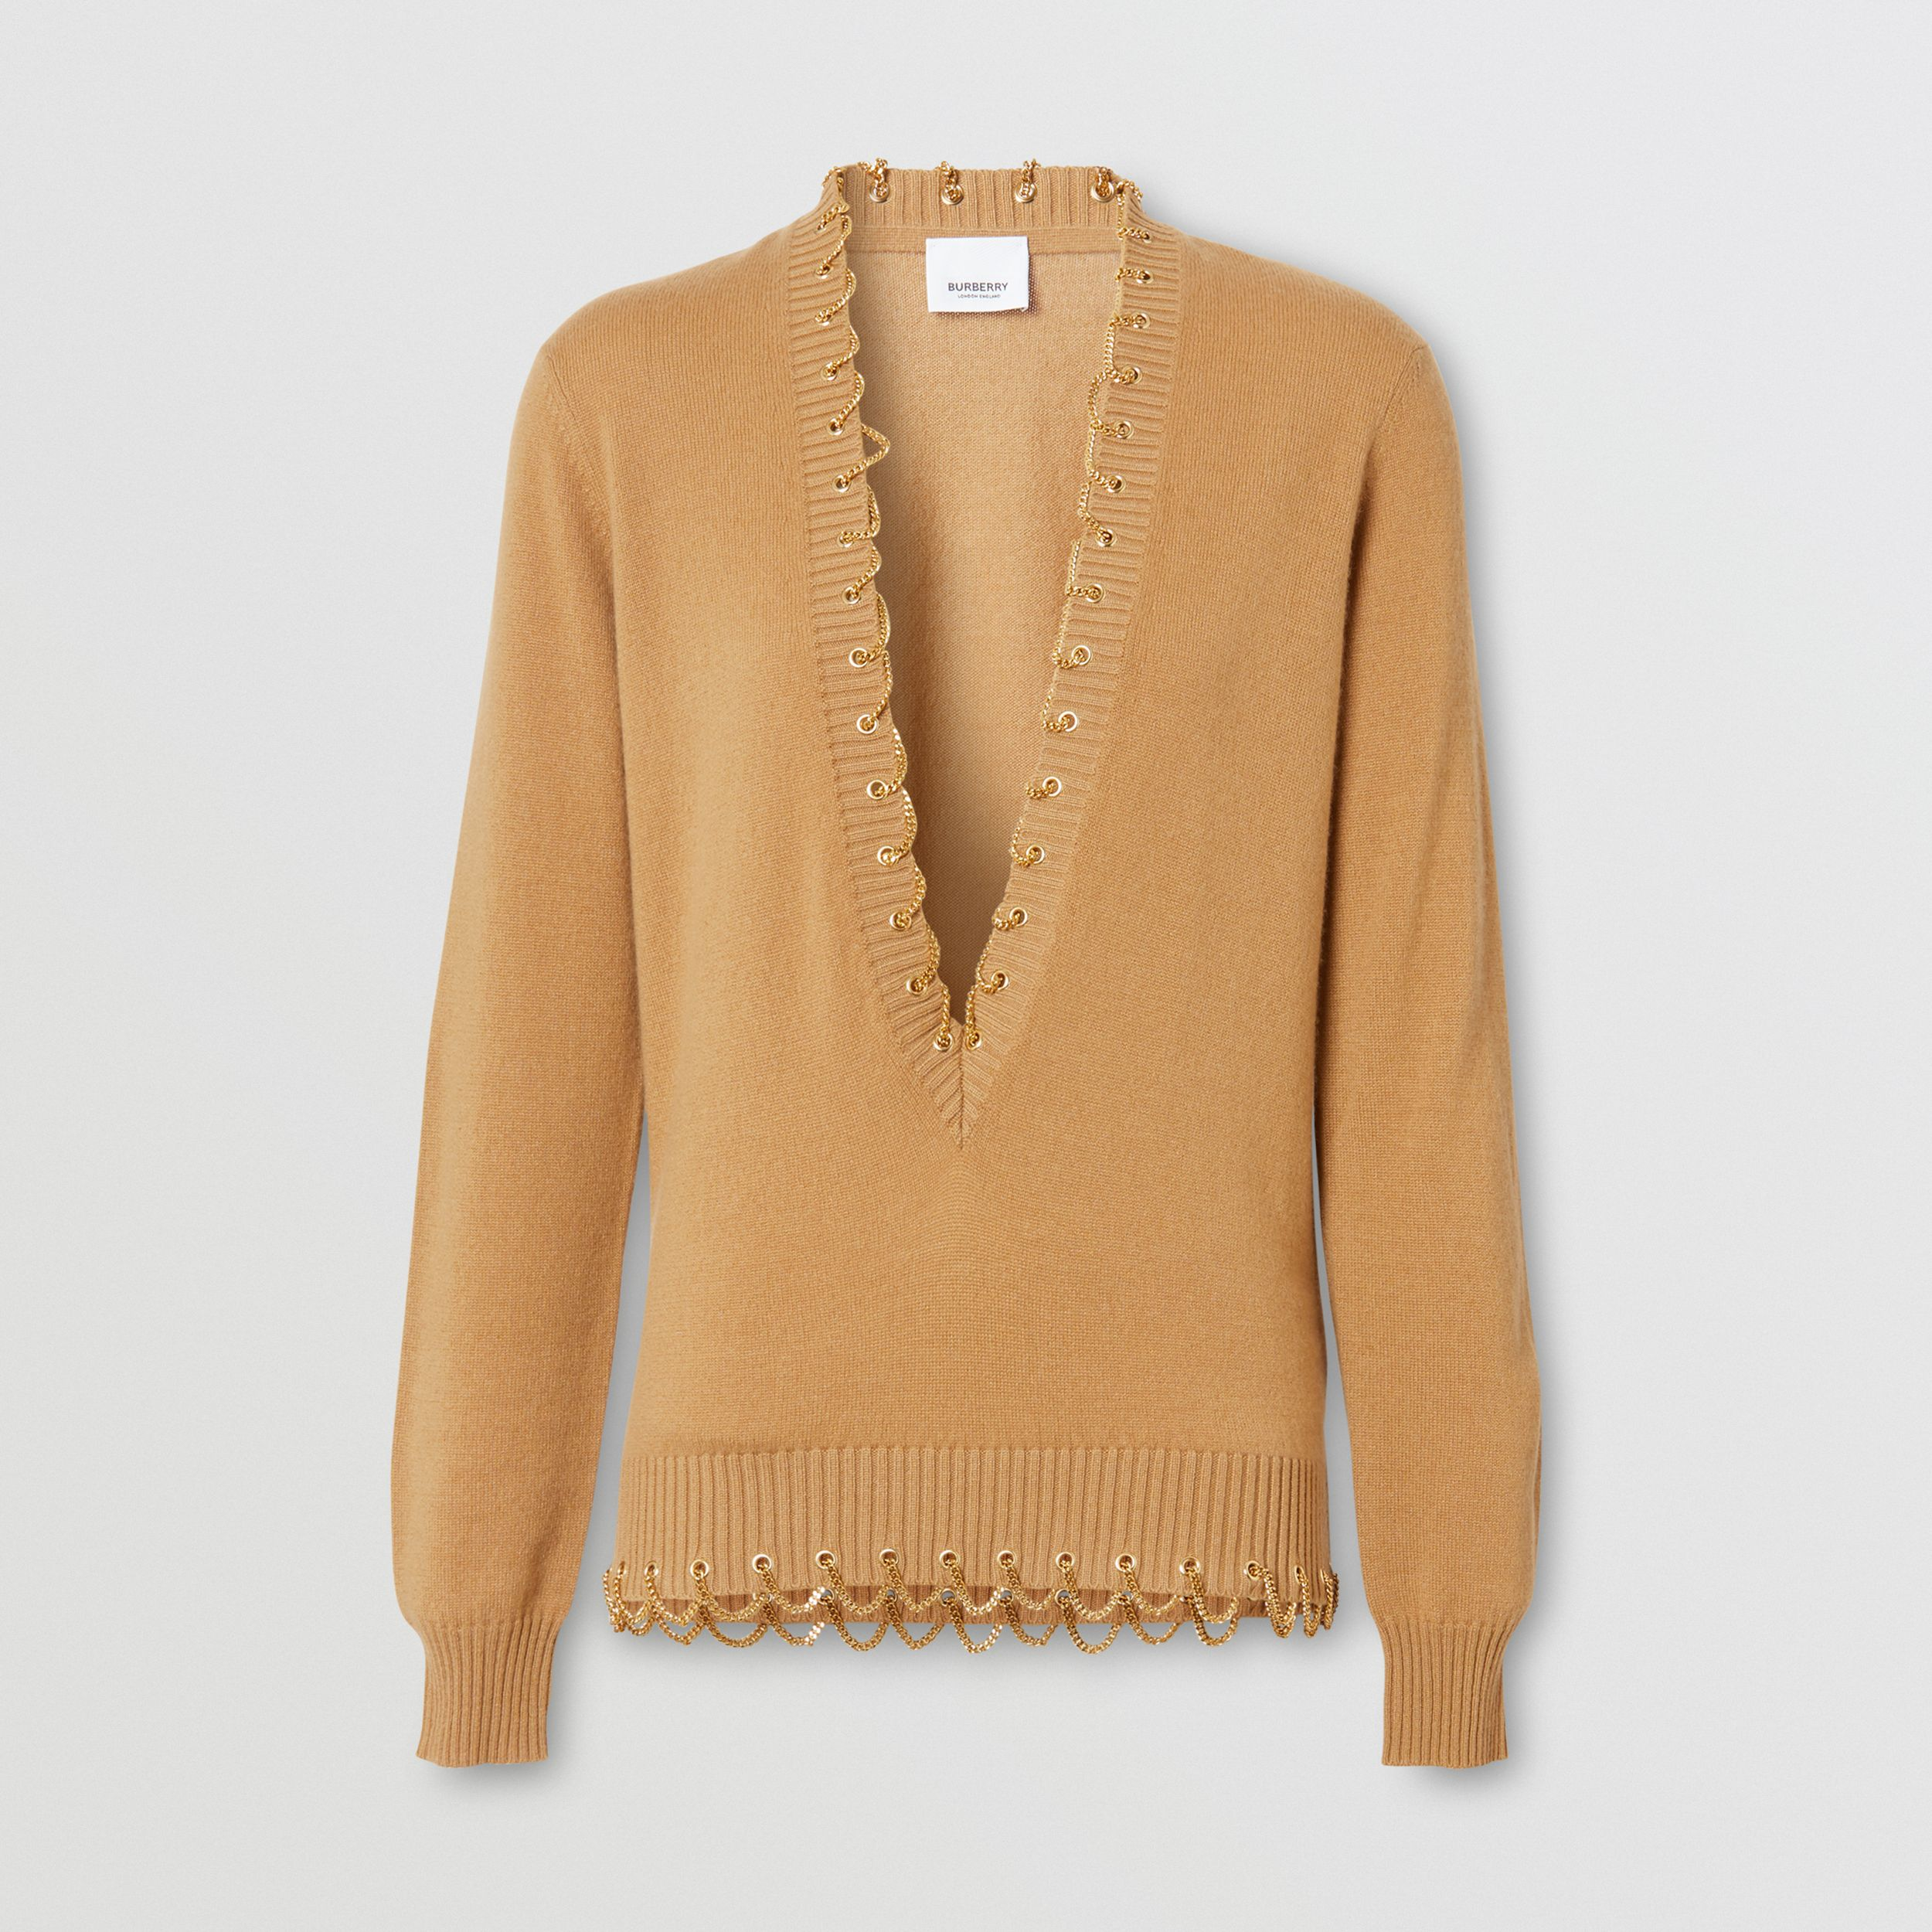 Chain Detail Cashmere Sweater in Camel - Women | Burberry - 4